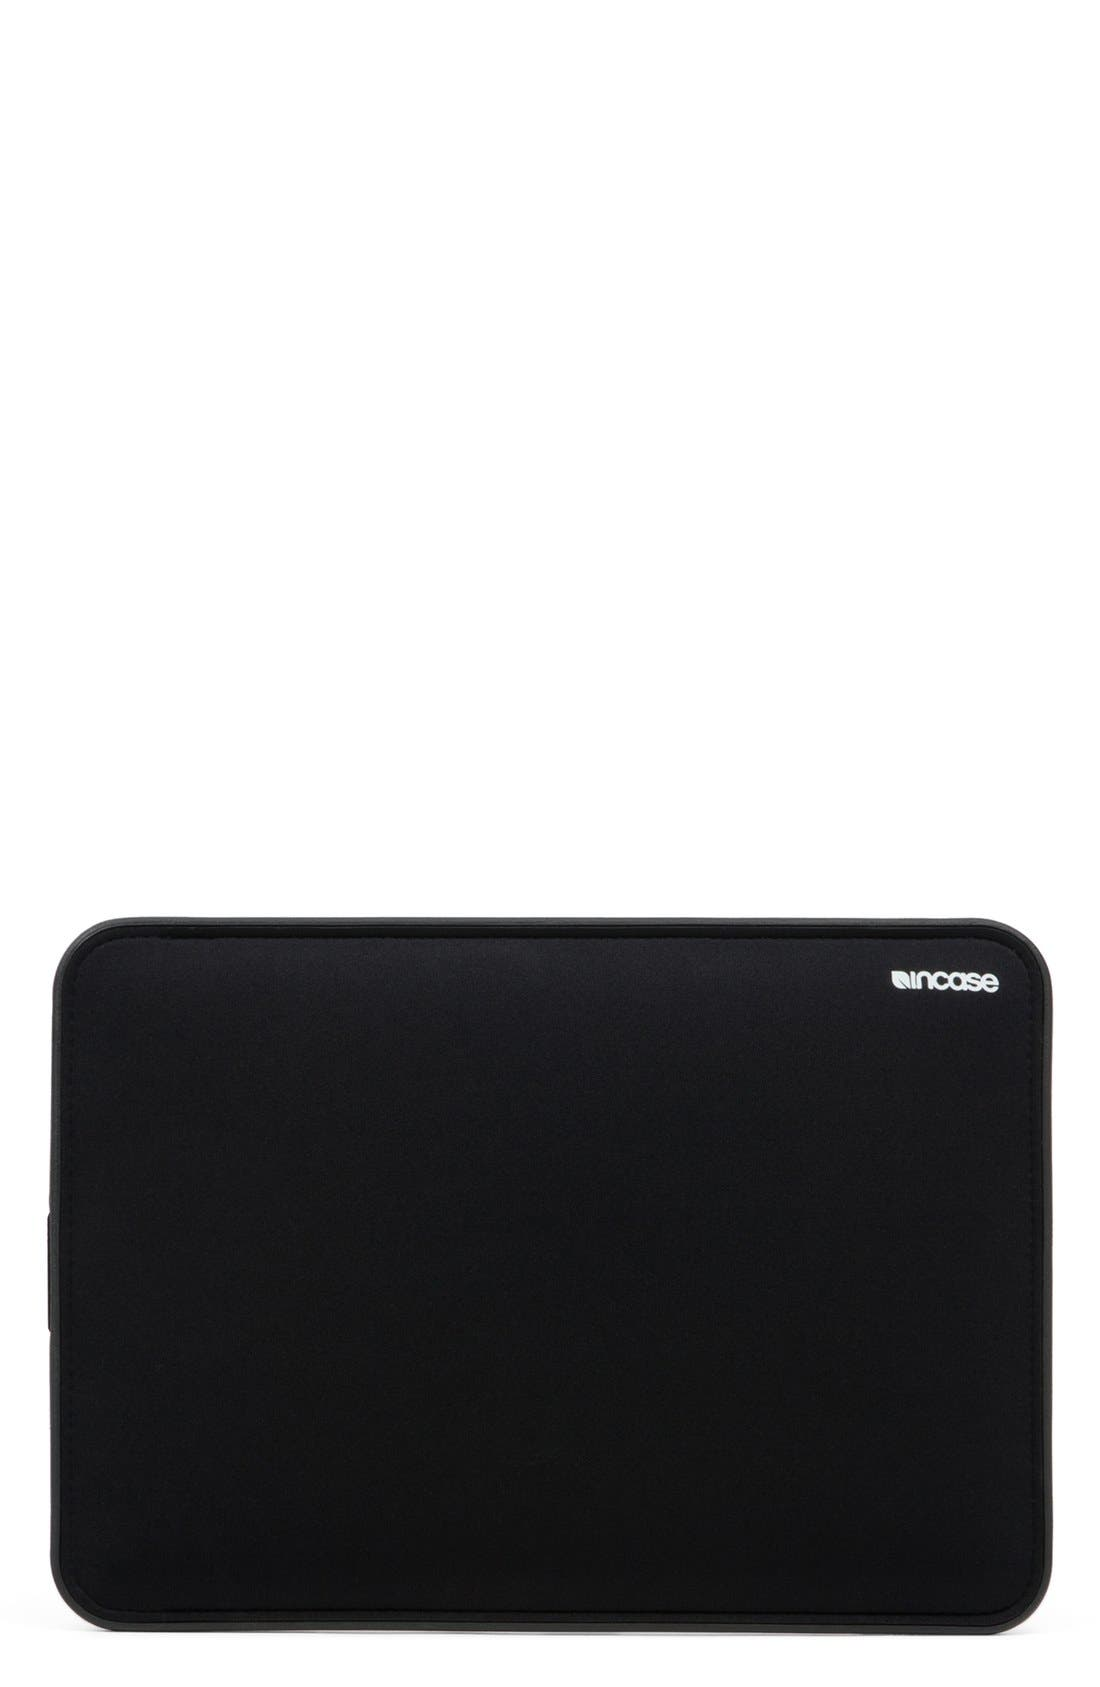 Incase Designs 'Icon' MacBook Pro Retina Laptop Sleeve (15 Inch)